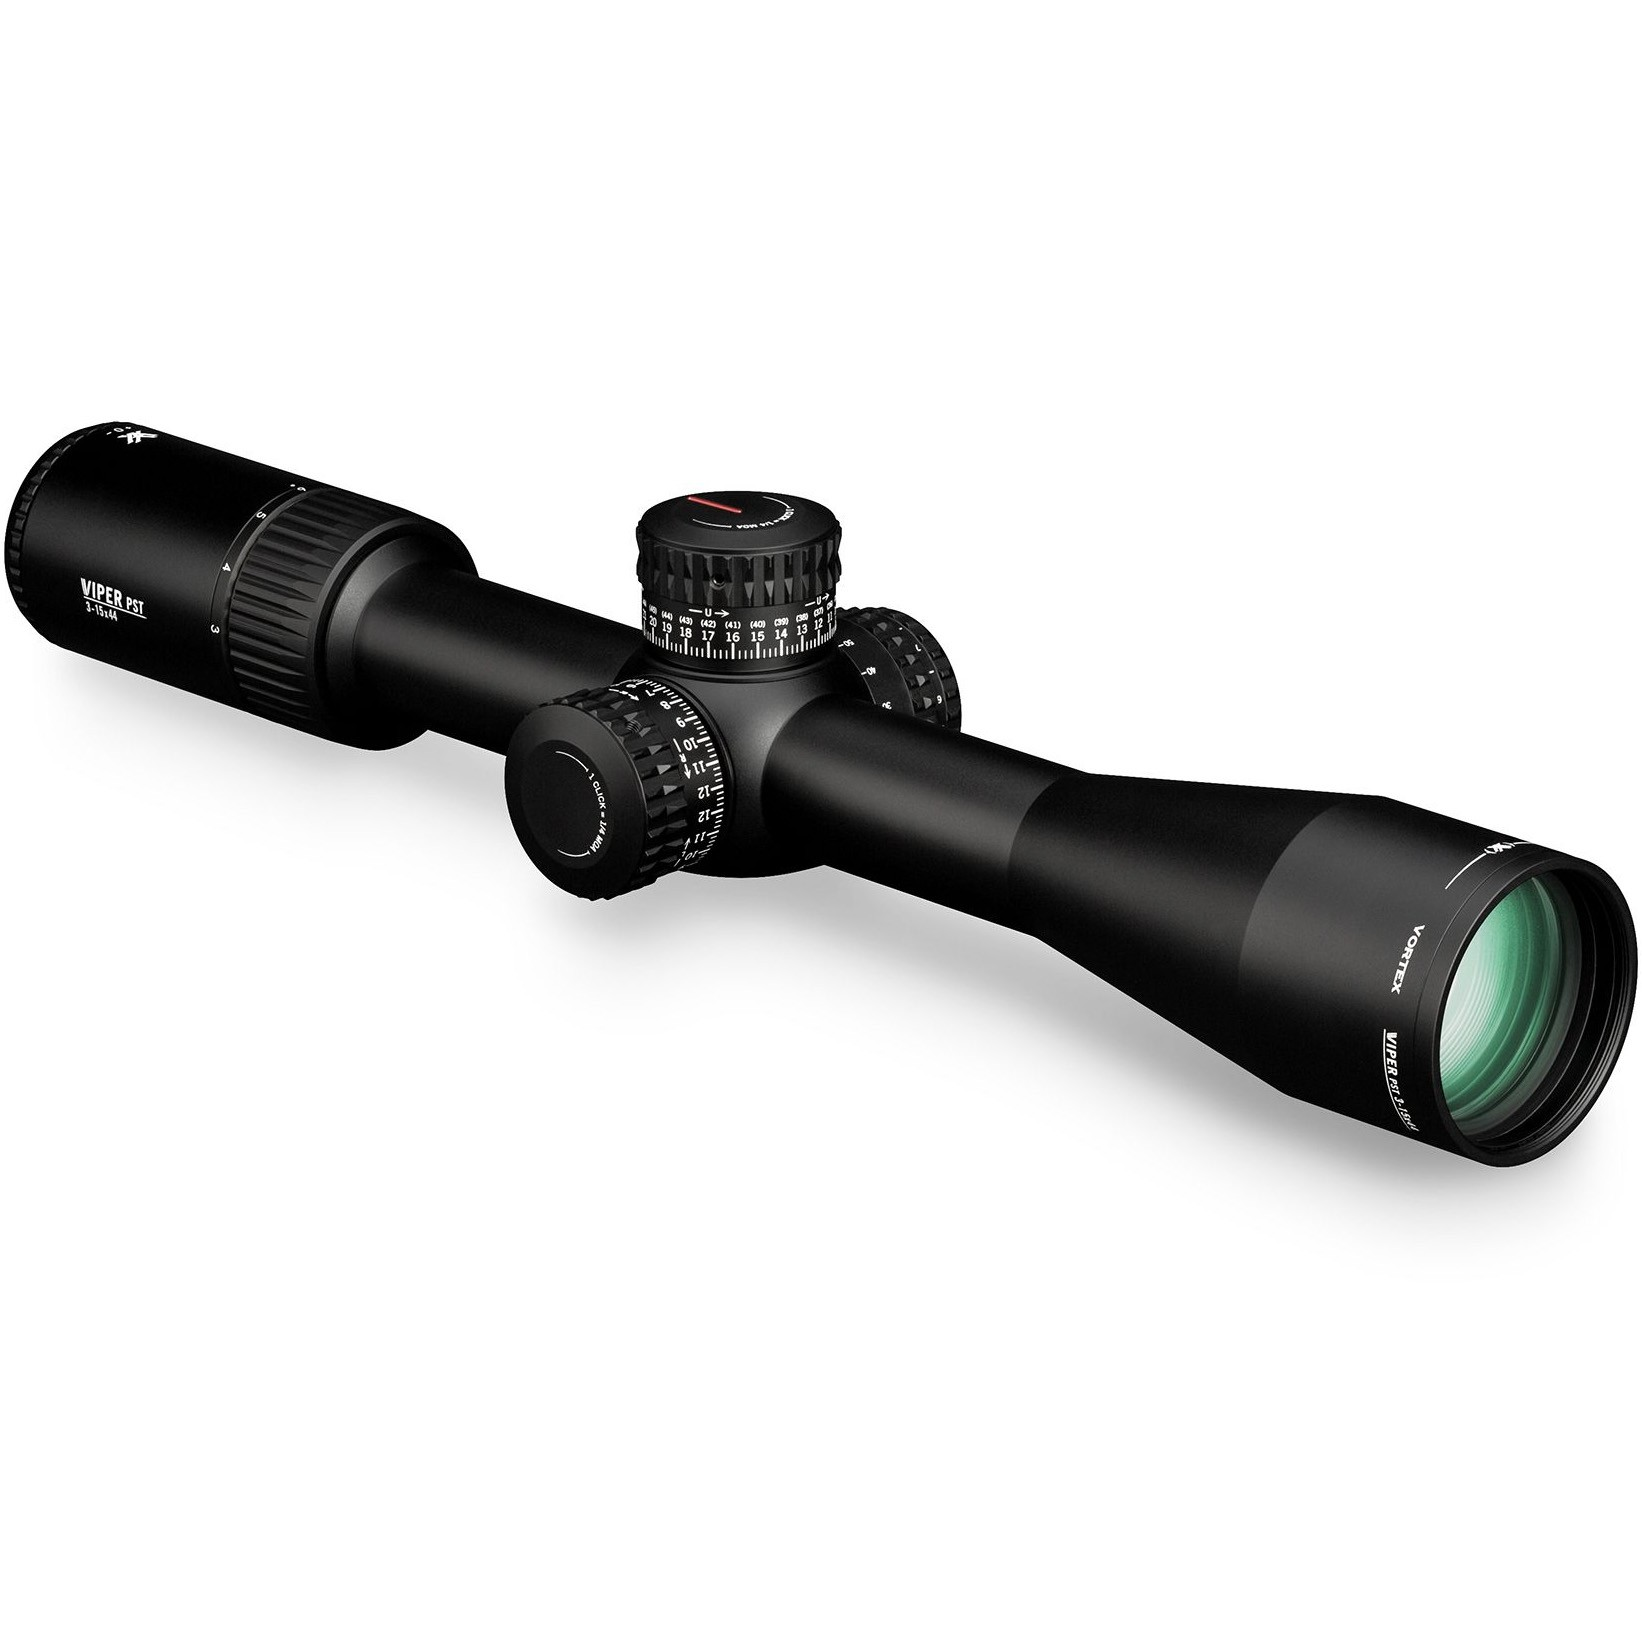 Vortex Optics 3-15x44 Viper PST Gen II 30mm Rifle Scope